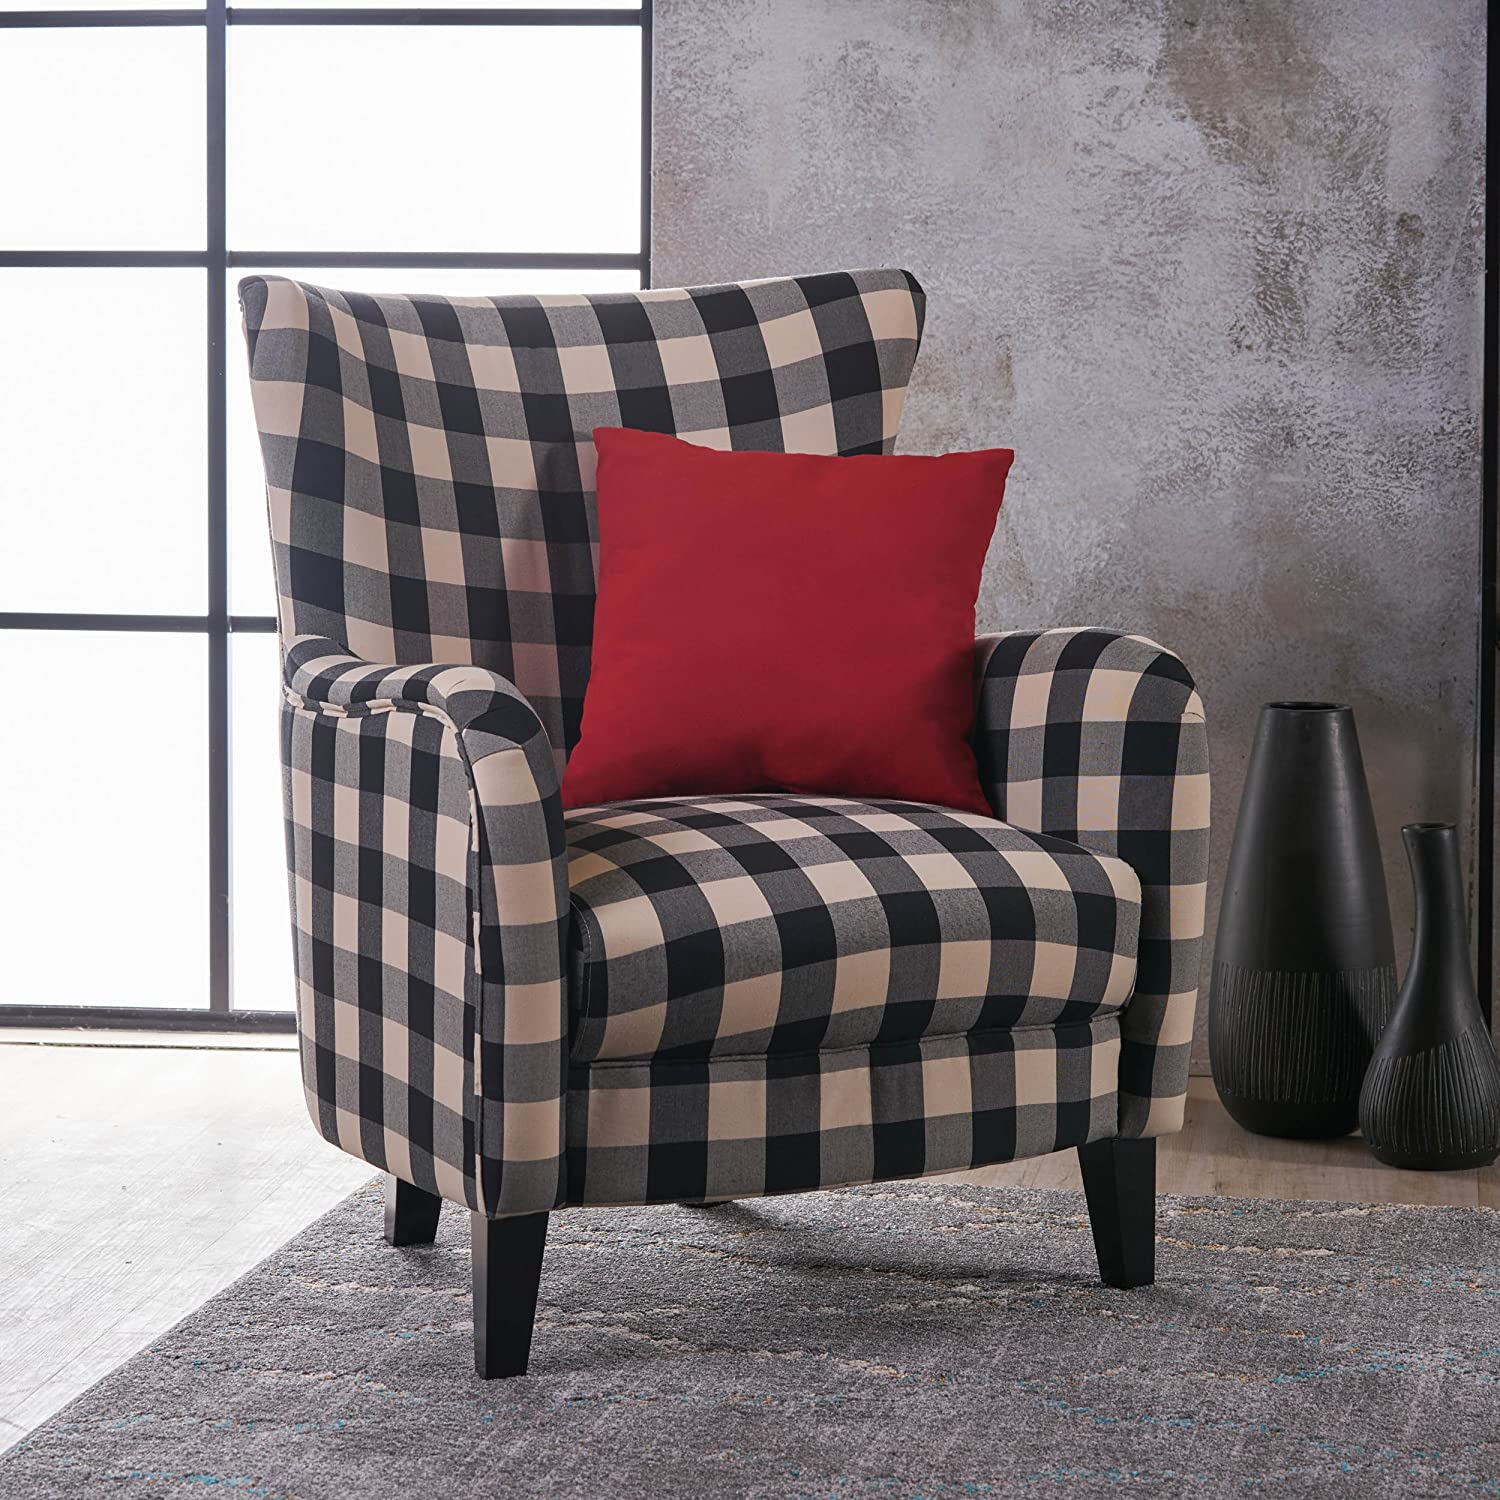 buffalo plaid upholstered chair